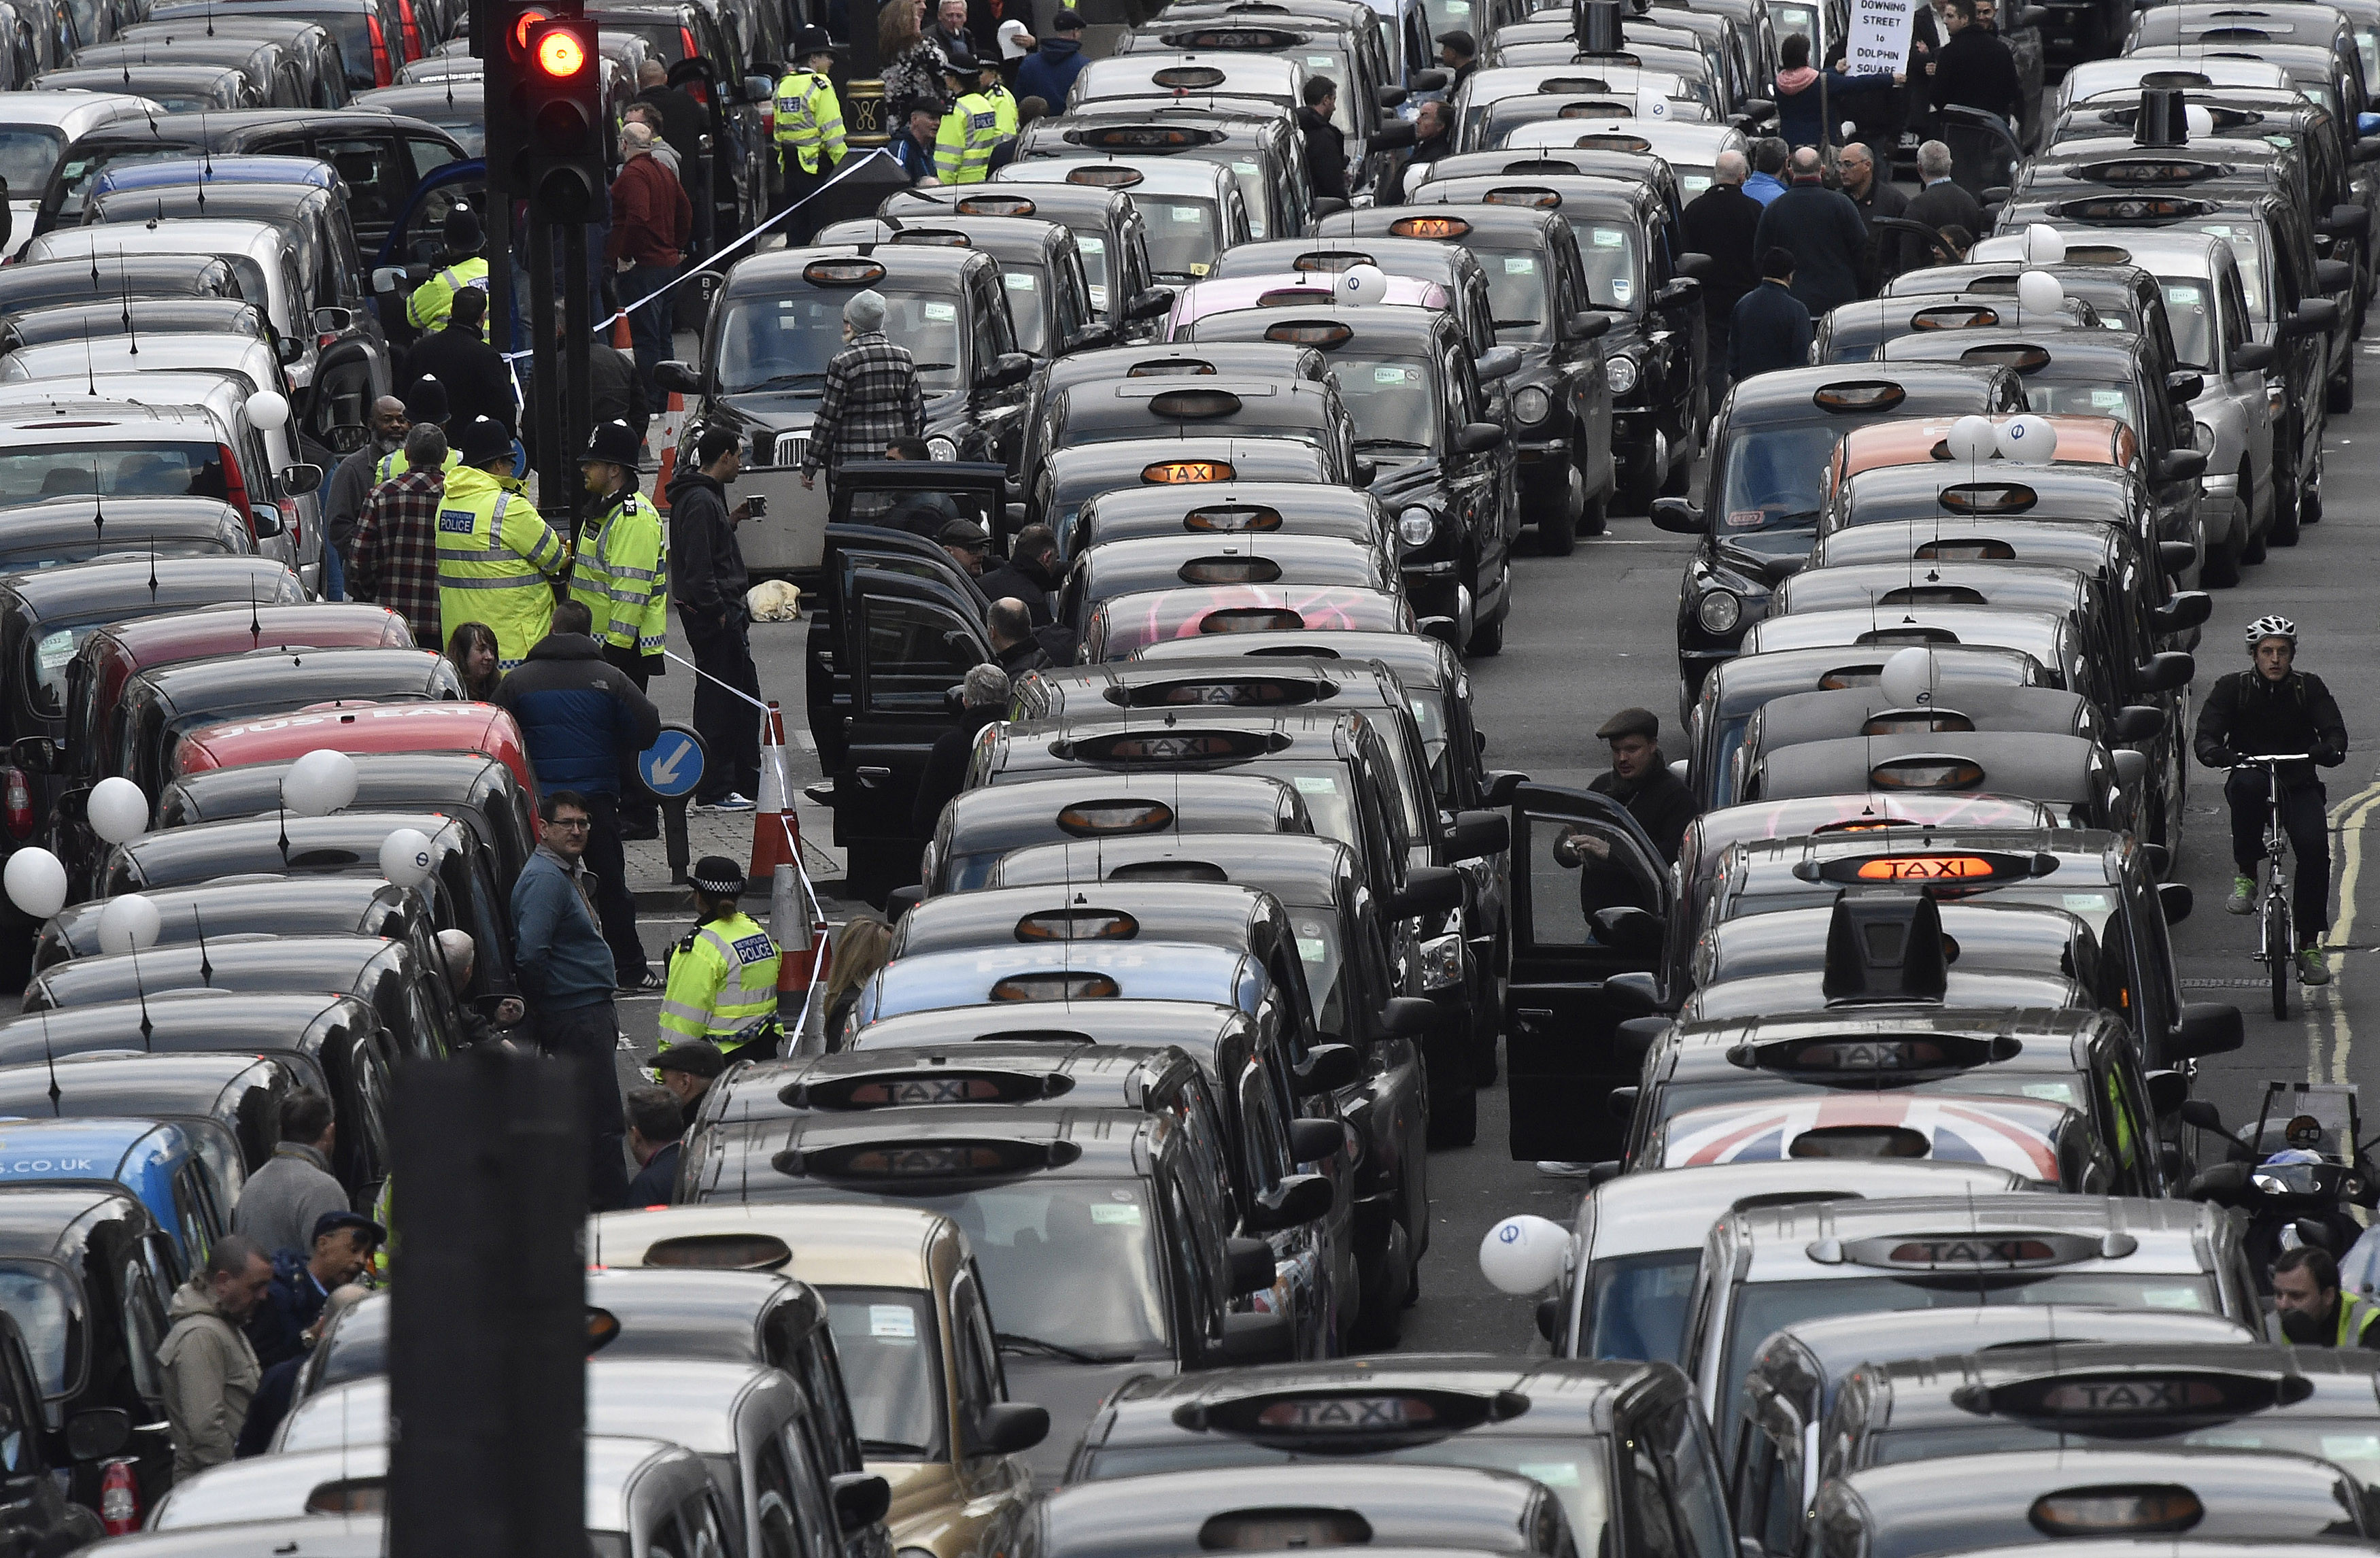 London cab drivers protest against Uber in central London, Britain February 10, 2016. REUTERS/Toby Melville/File Photo - RTSNHSD